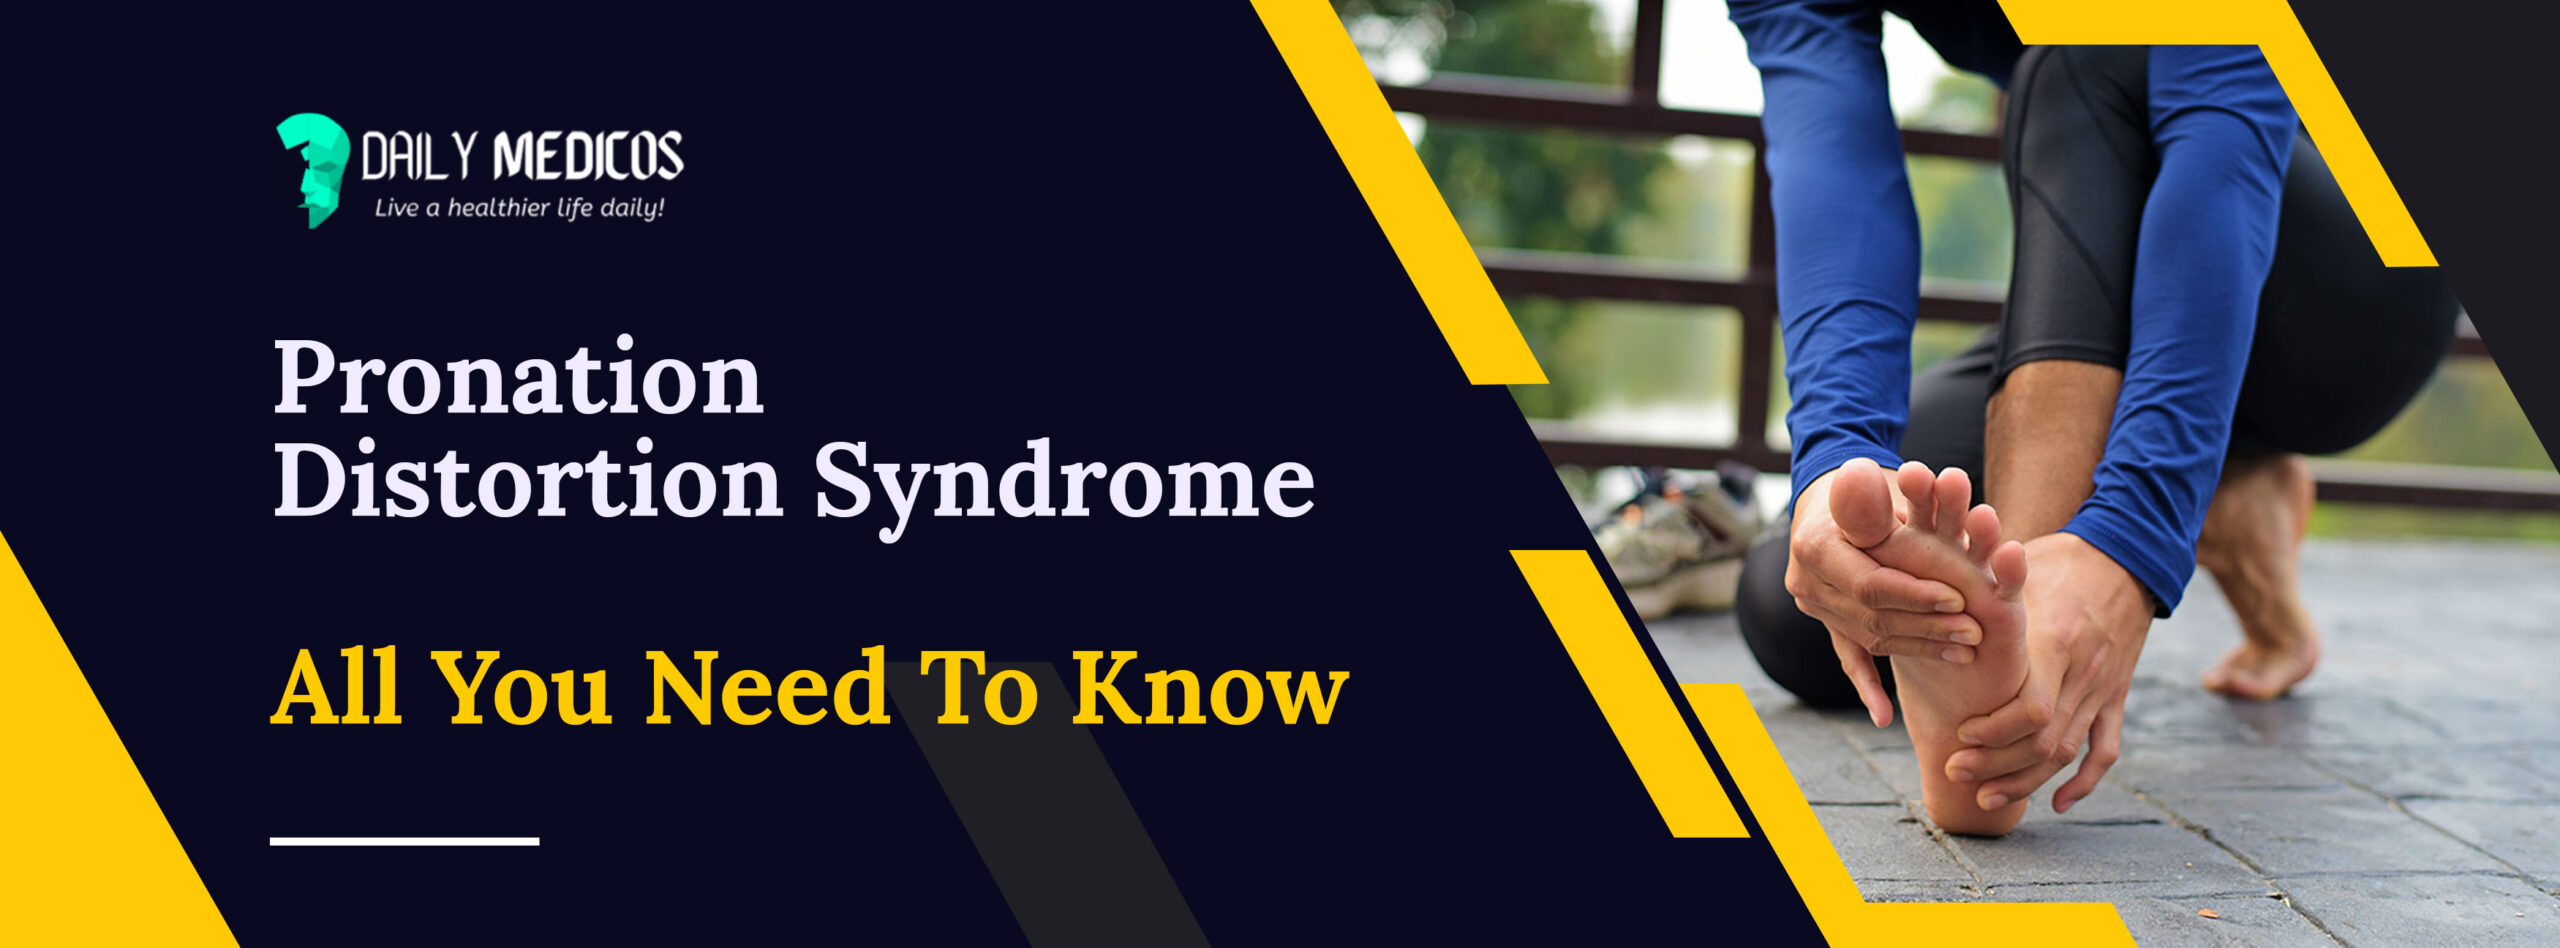 Pronation Distortion Syndrome: All You Need To Know 1 - Daily Medicos